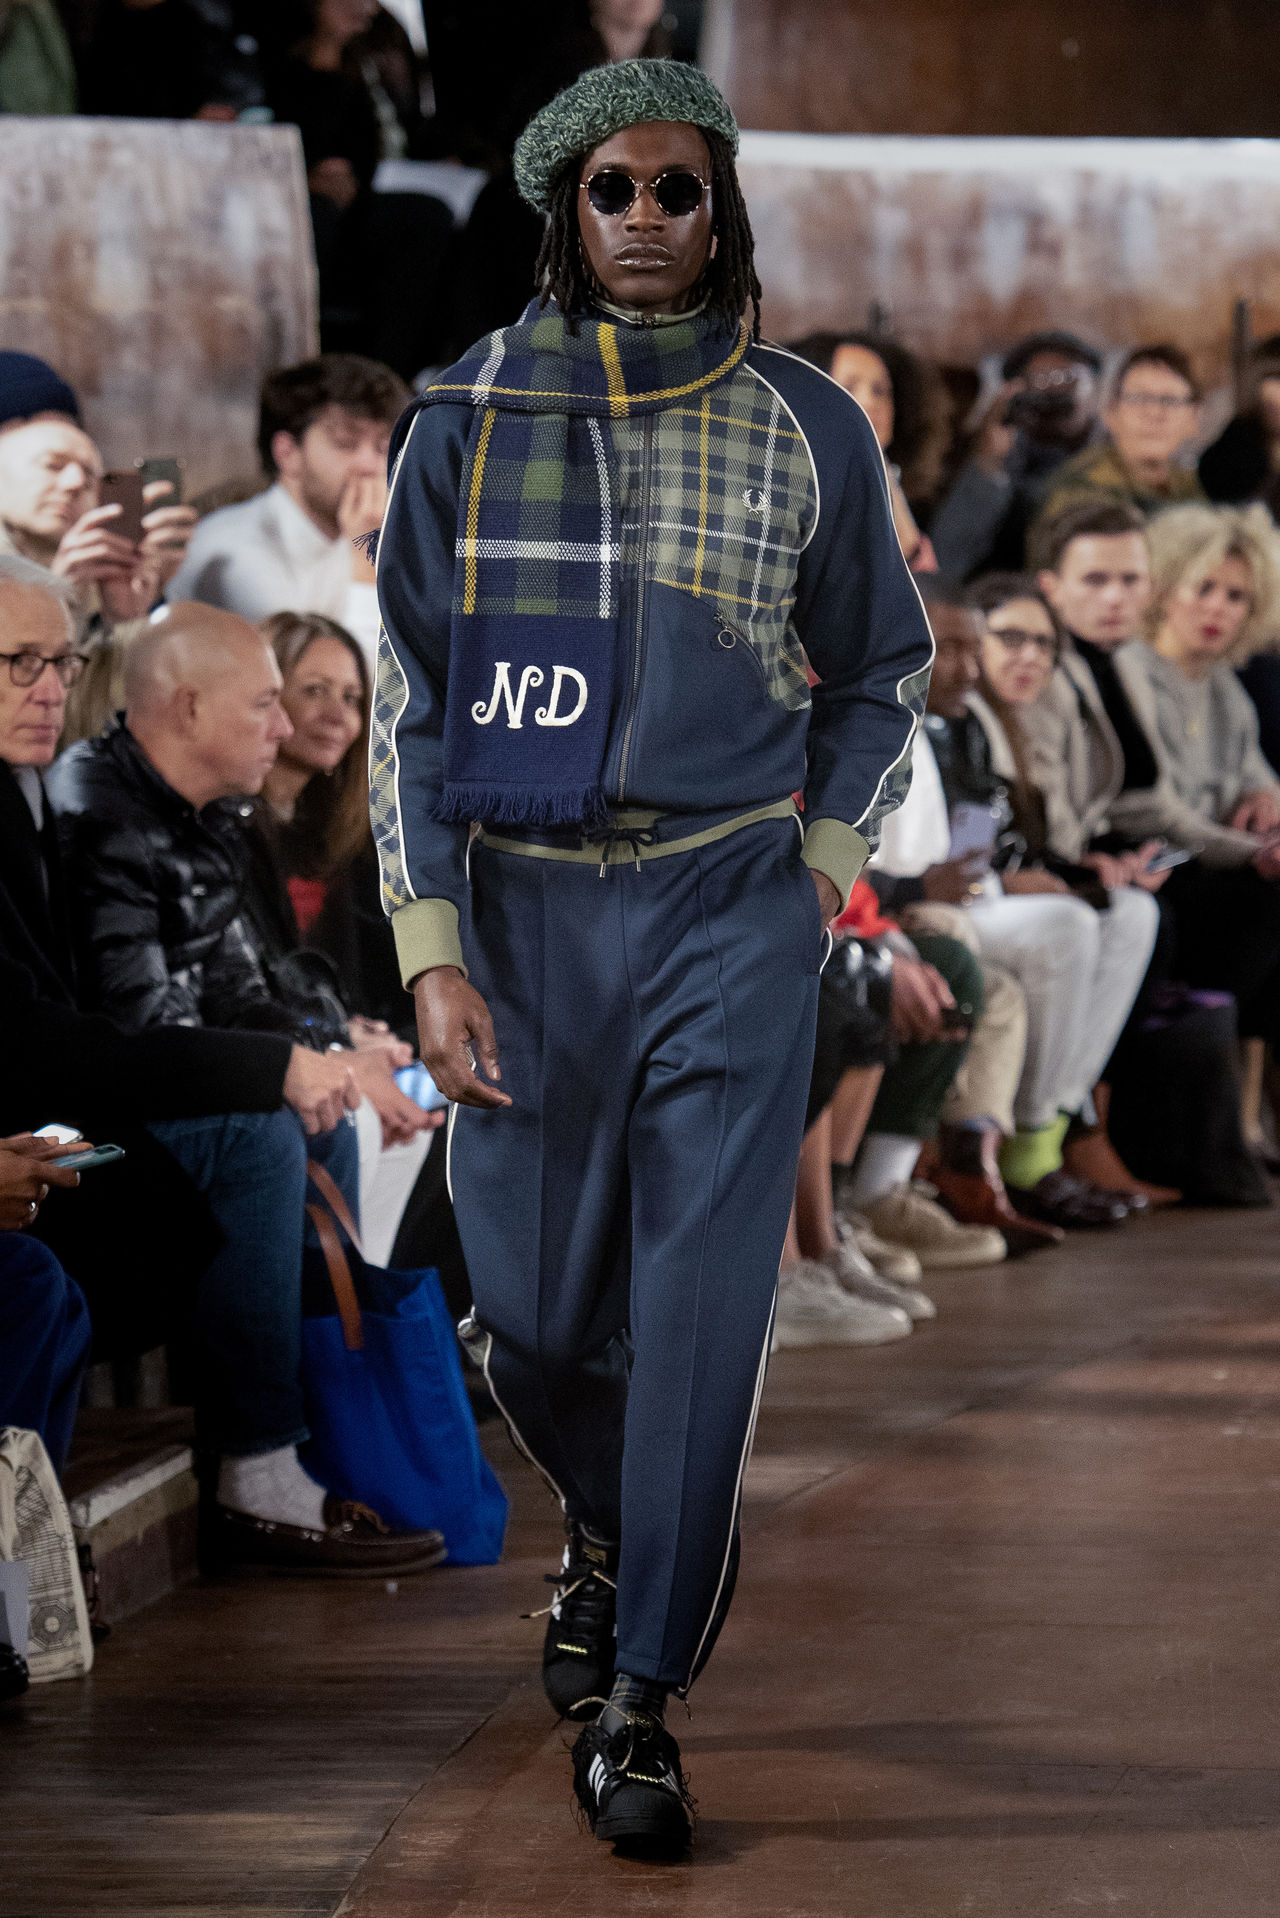 A model walking down the runway wearing Nicholas Daley's Autumn Winter 2020 collection. This look has dark greens and blues. A scarf worn by the model has the initials ND embroidered on it.